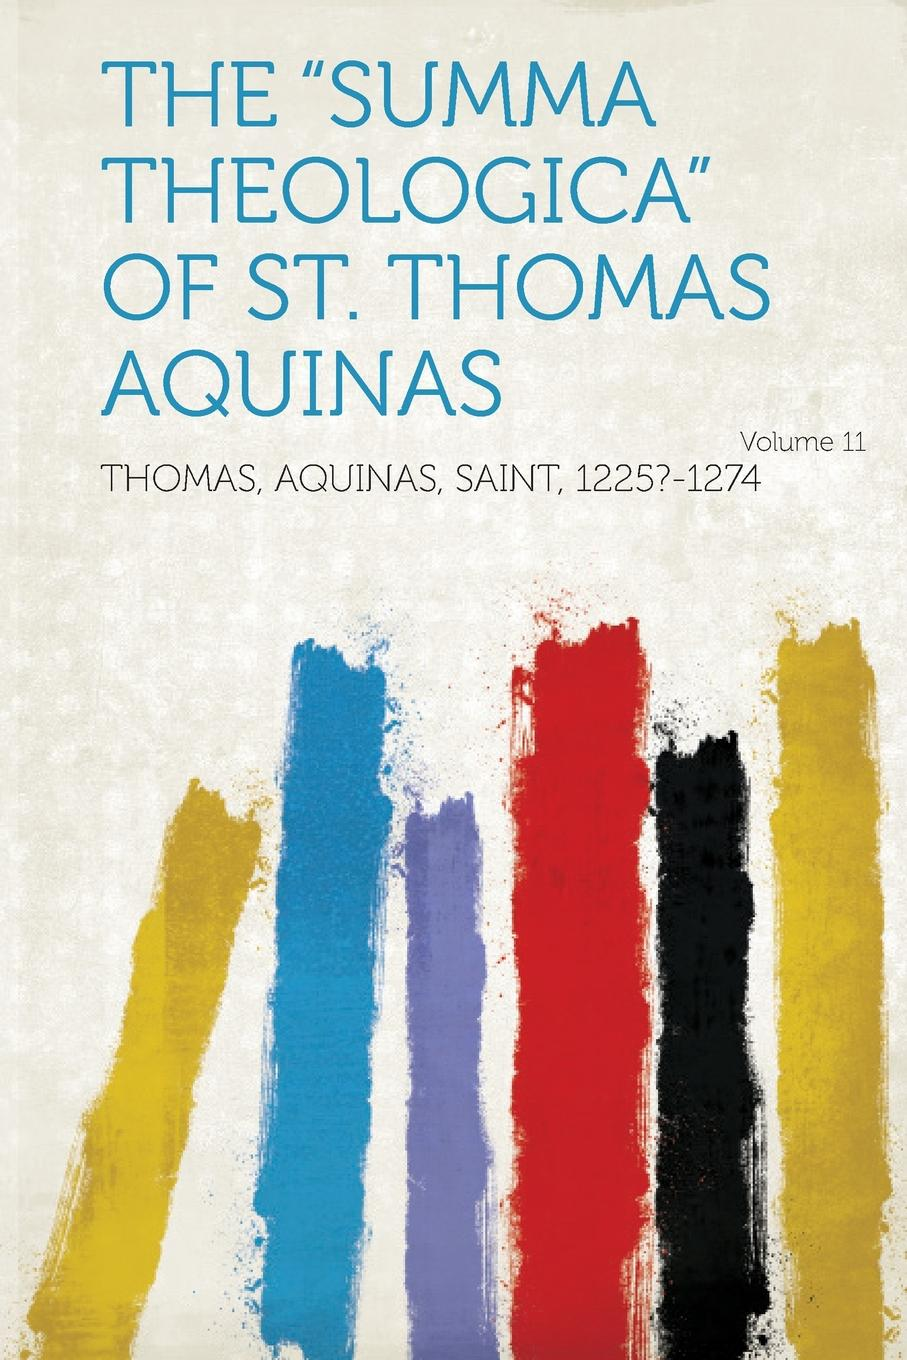 Thomas Aquinas The Summa Theologica of St. Thomas Aquinas Volume 11 aquinas saint thomas aquinas ethicus or the moral teaching of st thomas a translation of the principle portions of the second part of the summa theologica with notes